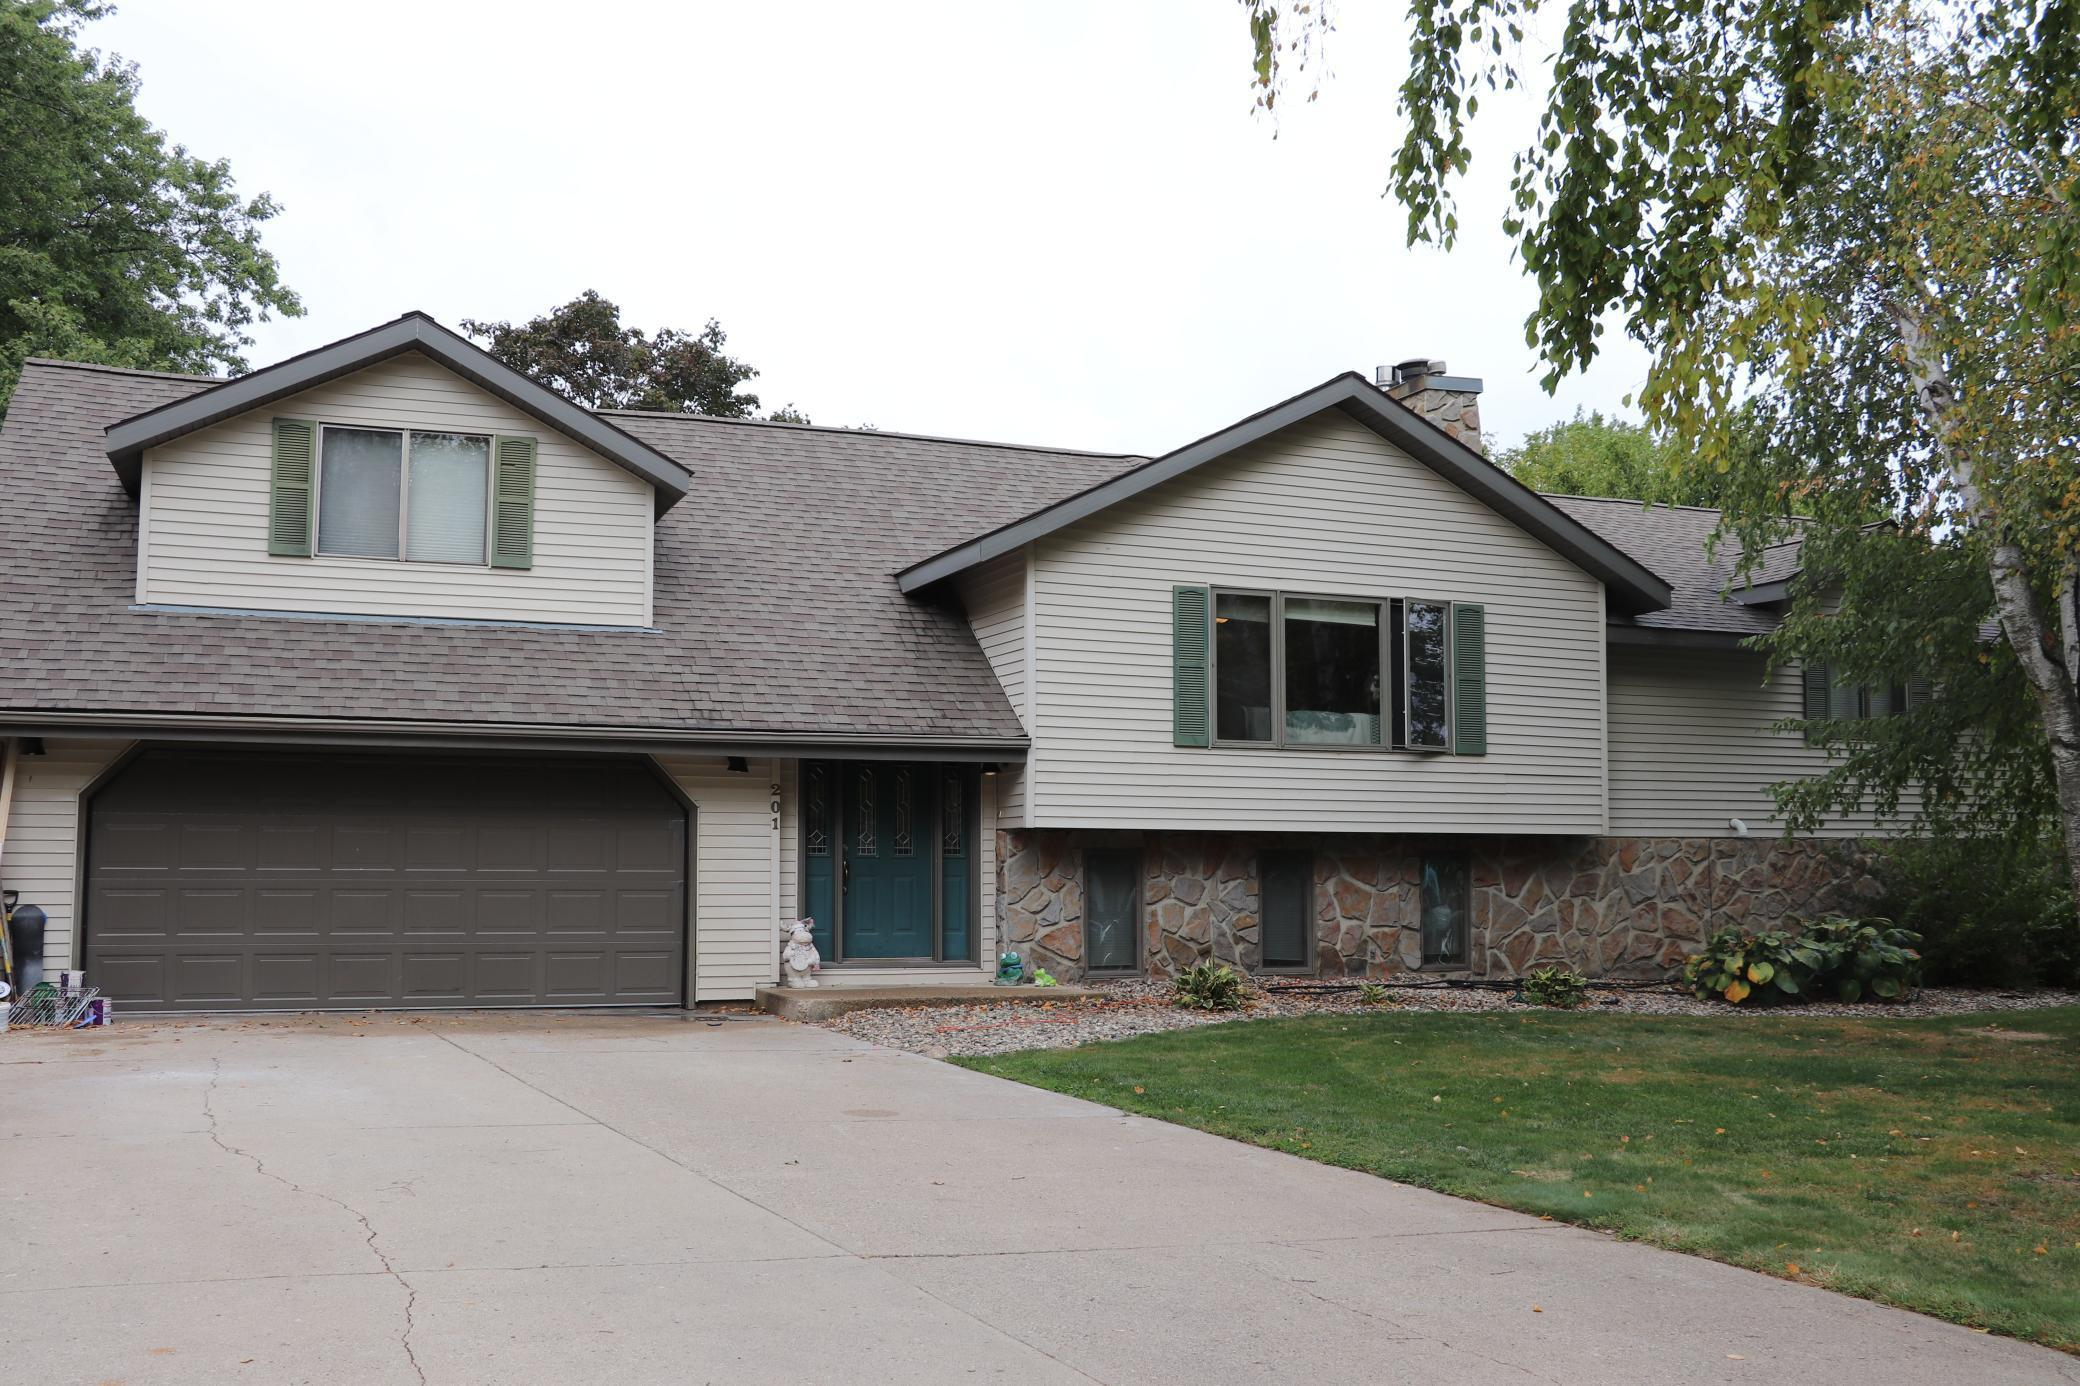 201 Stade Lane Property Photo - Fairmont, MN real estate listing